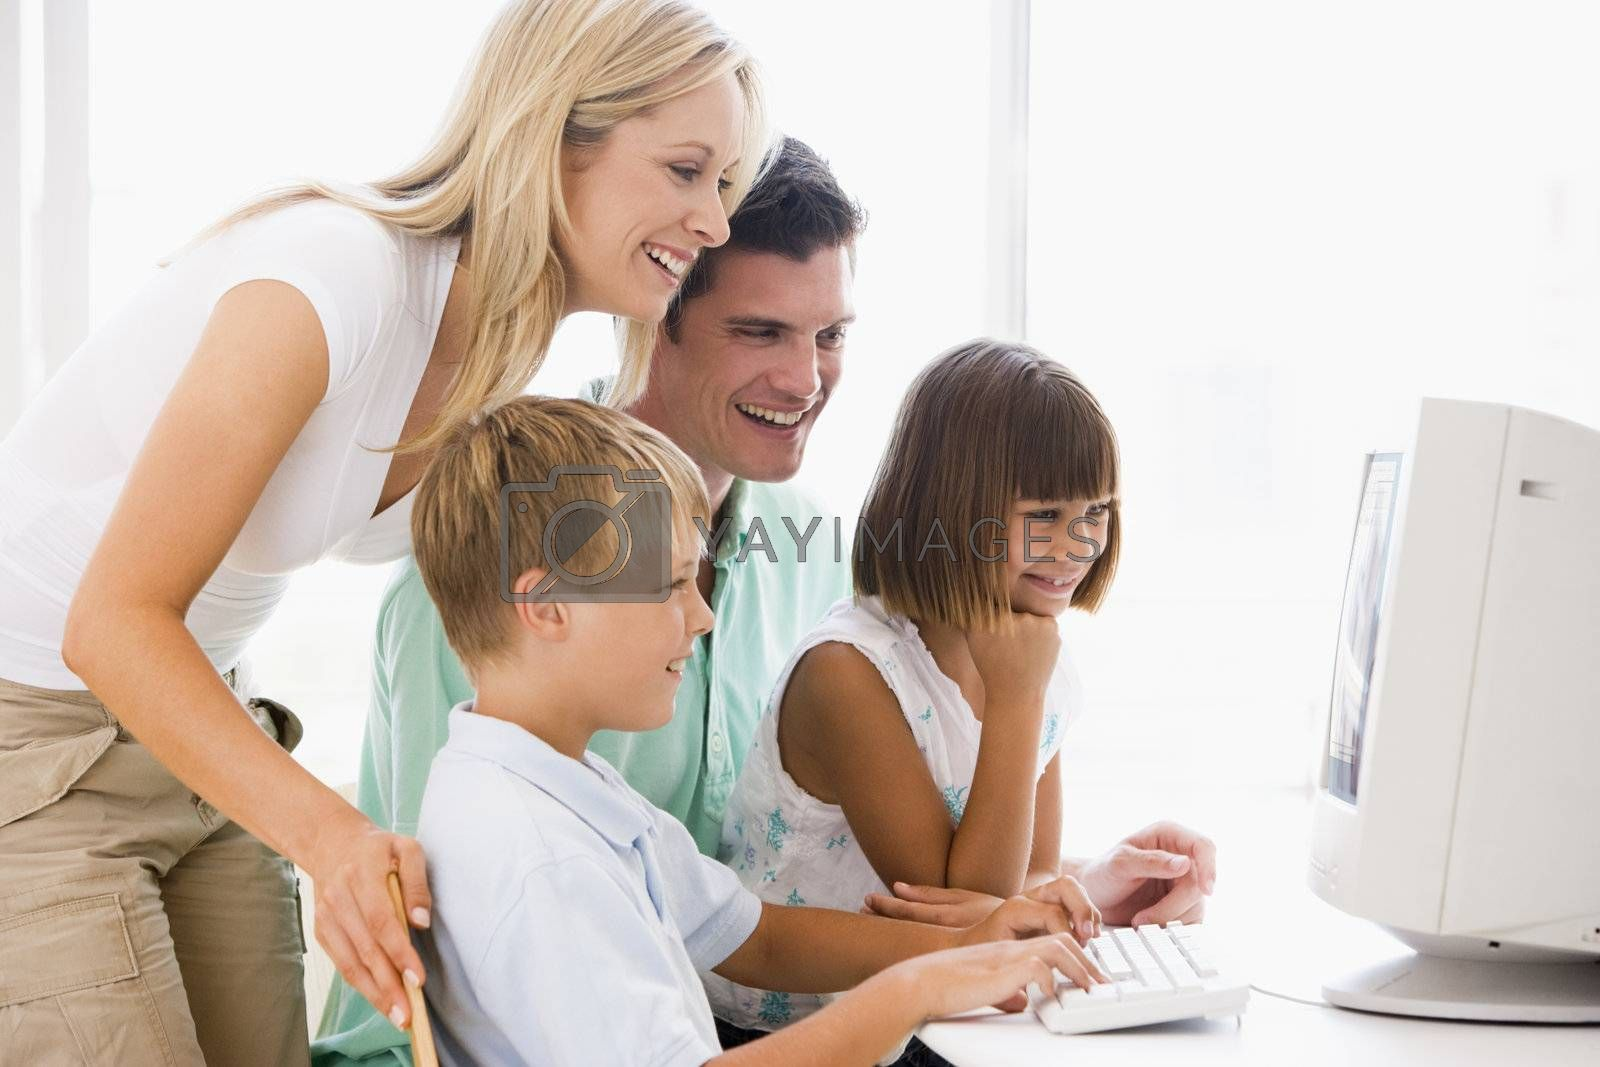 Family in home office using computer smiling by MonkeyBusiness